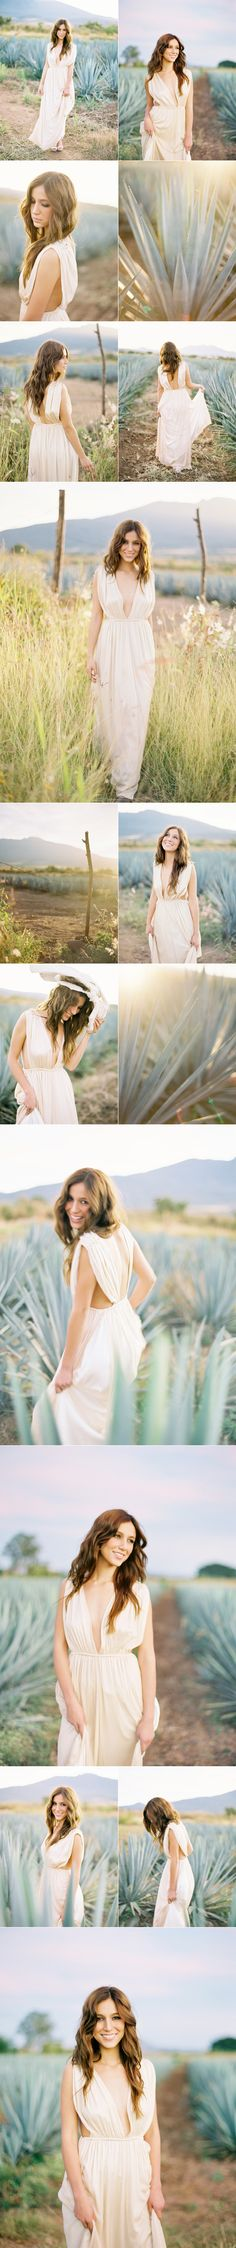 """Inspiration. Love the desert landscape... this type of shoot has been on my """"want to photograph"""" list for a while."""